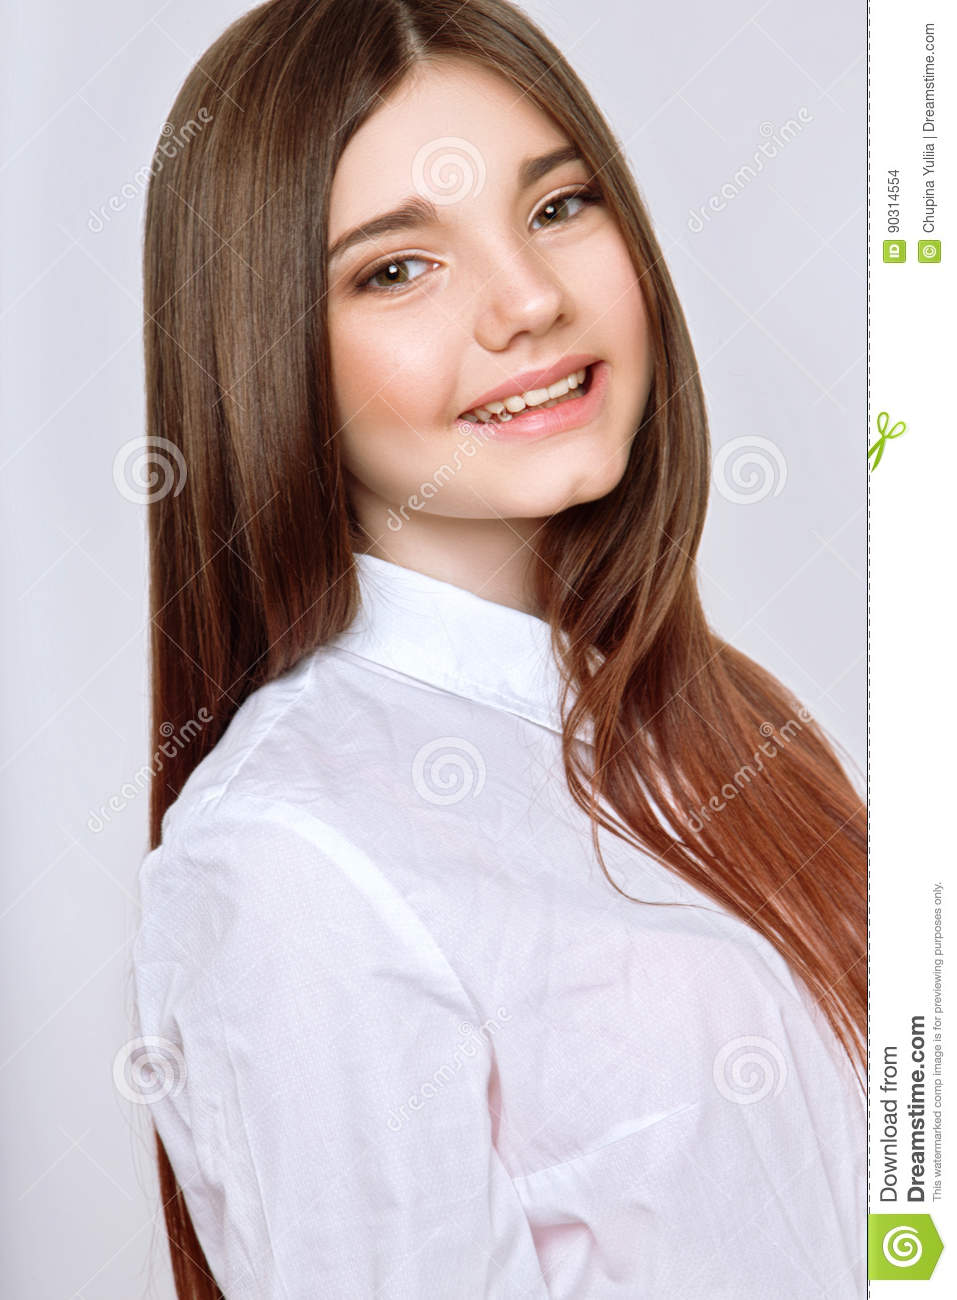 A Beautiful 13-years Old Girl Stock Photo